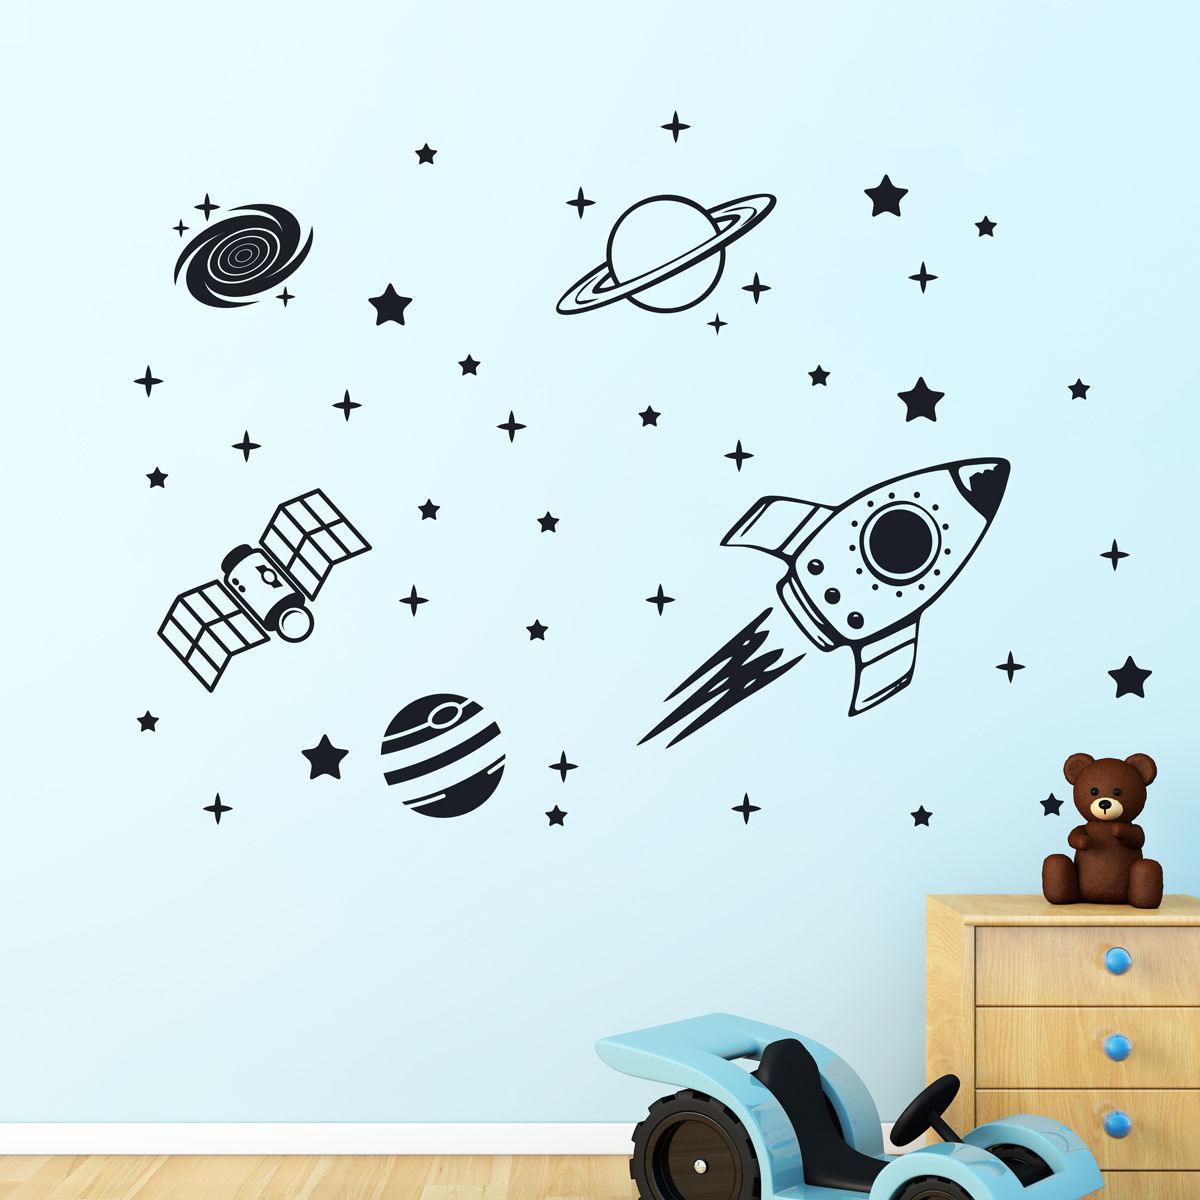 Rocket Ship Room Decor